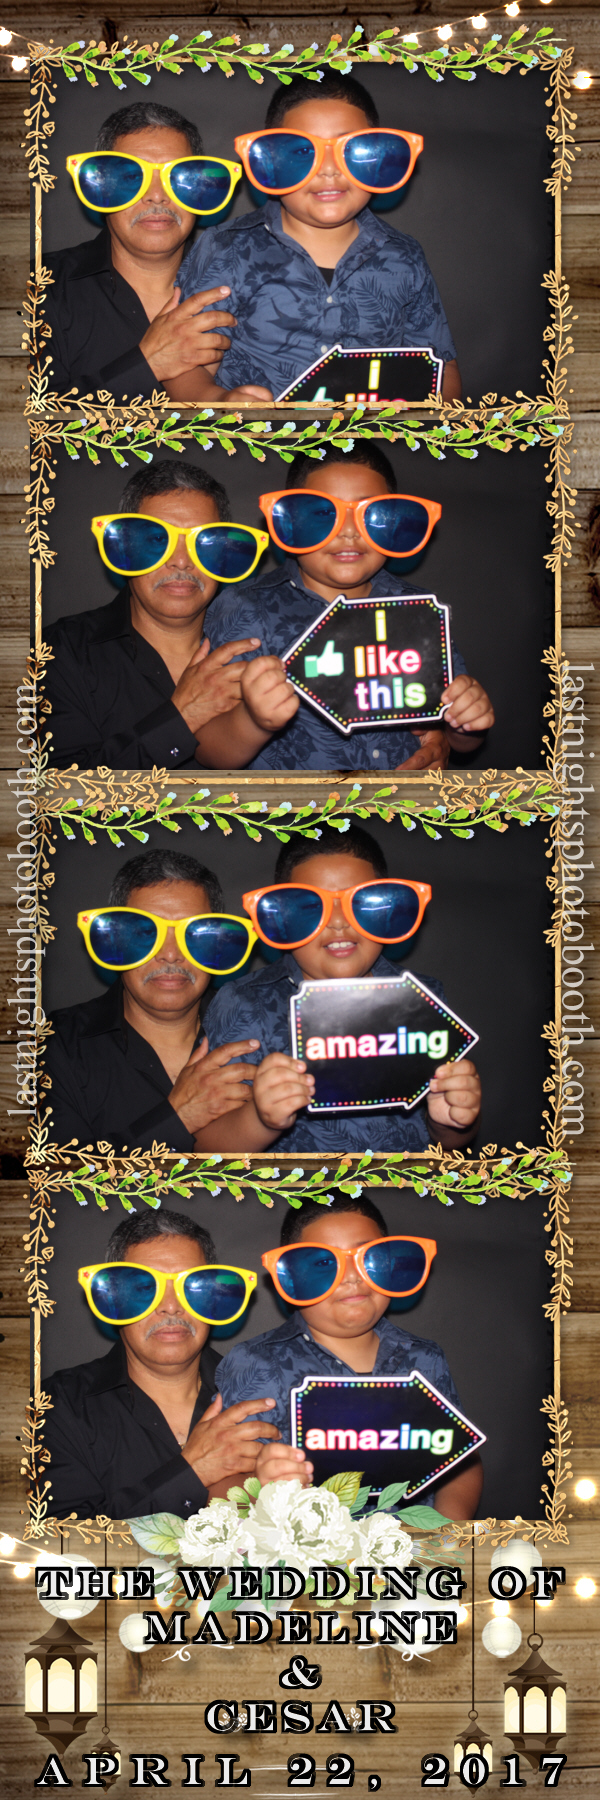 Photo Booth Rental For Madeline and Cesar Wedding_10